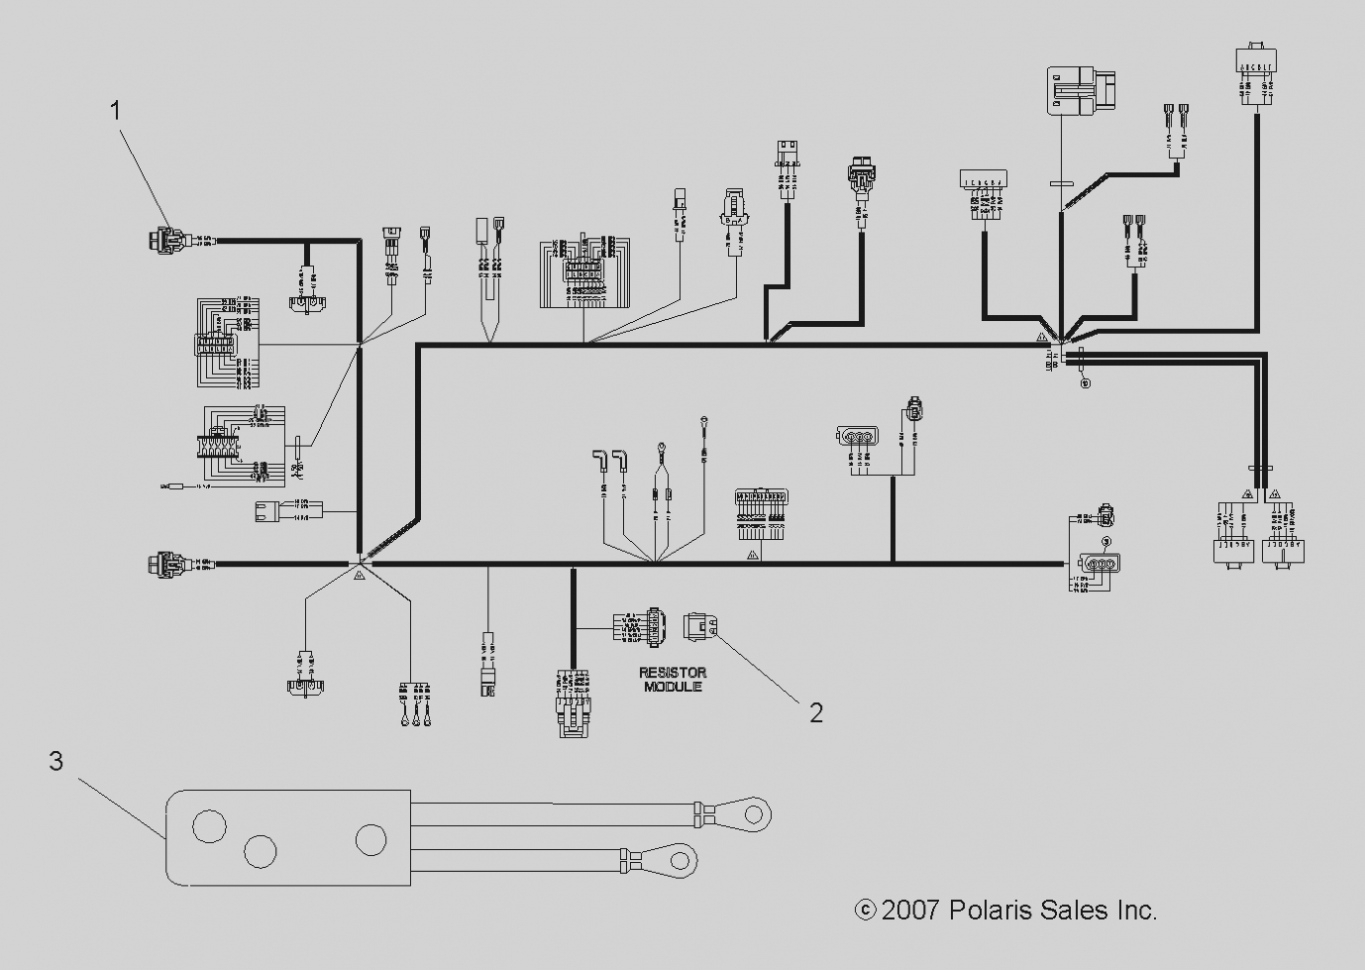 2011 Polaris Ranger Wiring Diagram. Parts. Wiring Diagram